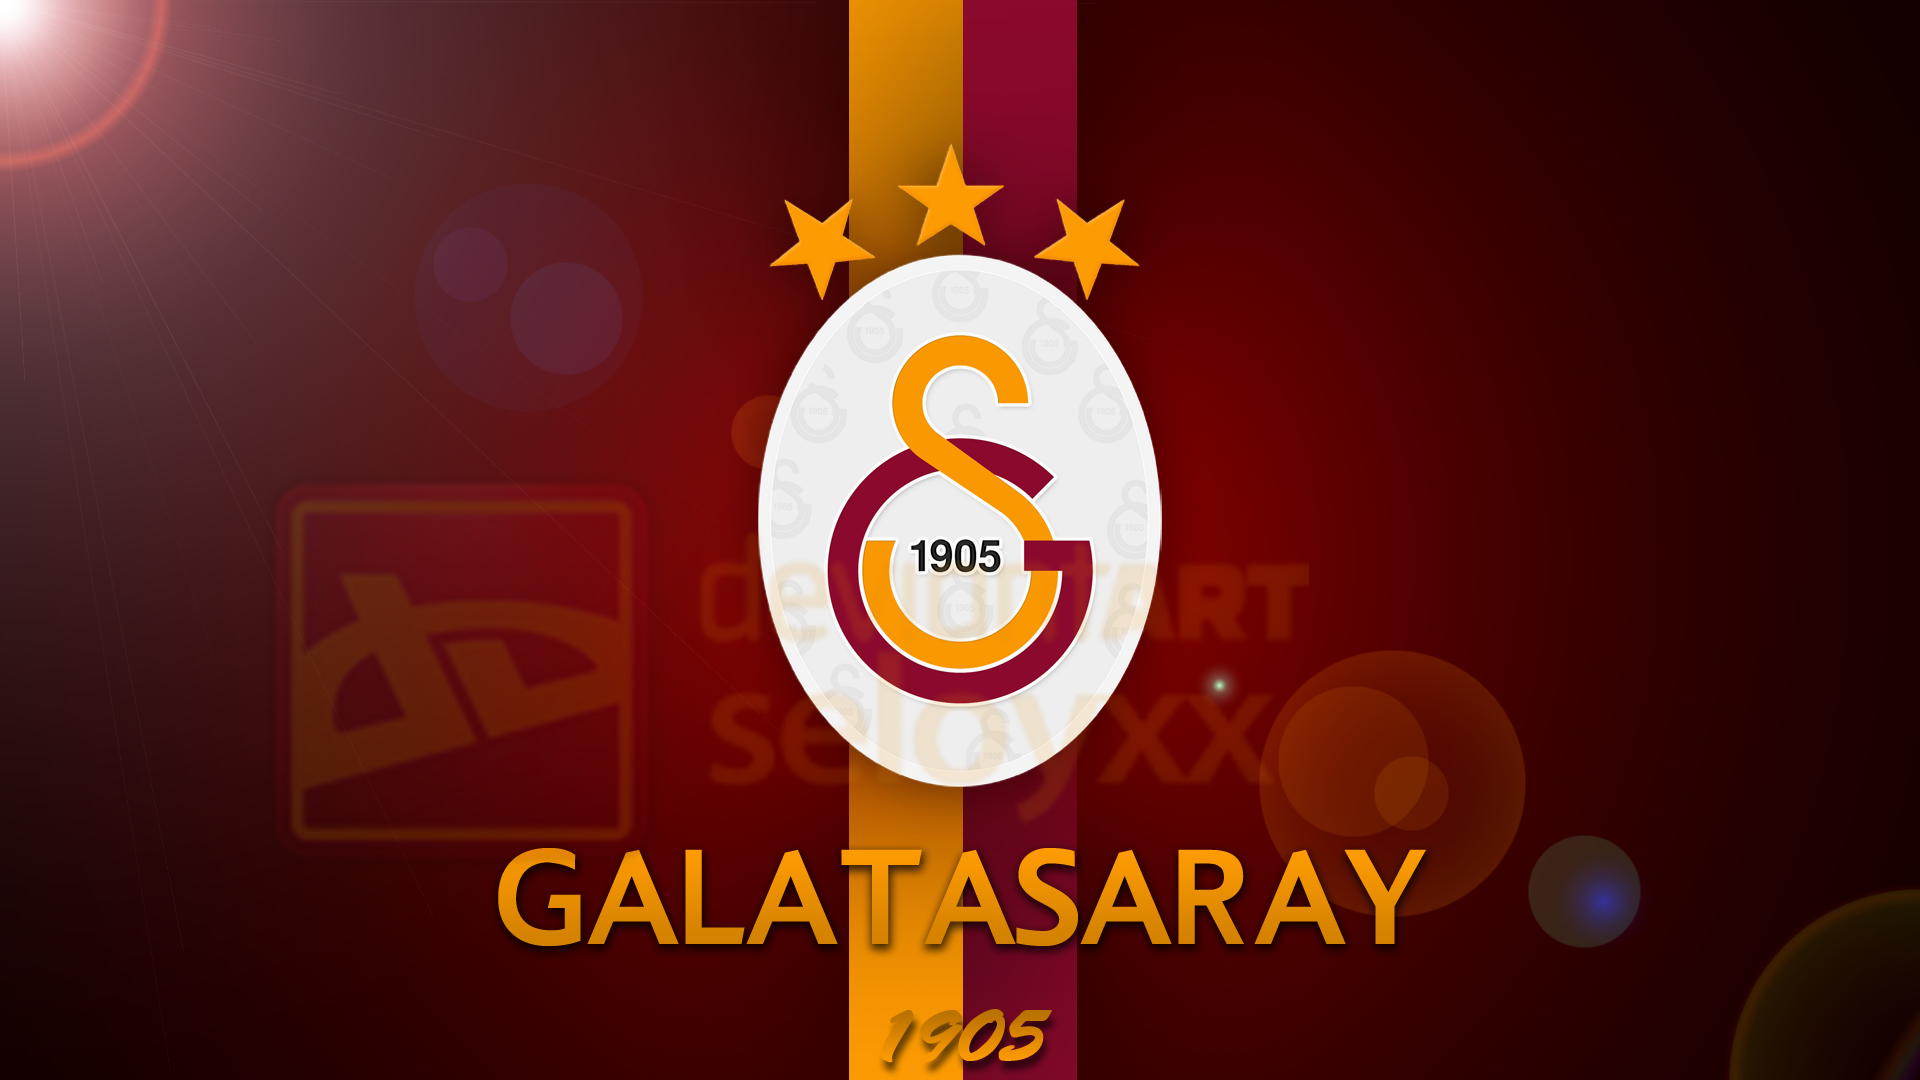 galatasaray_wallpaper_by_seloyxx-d6kfb1o